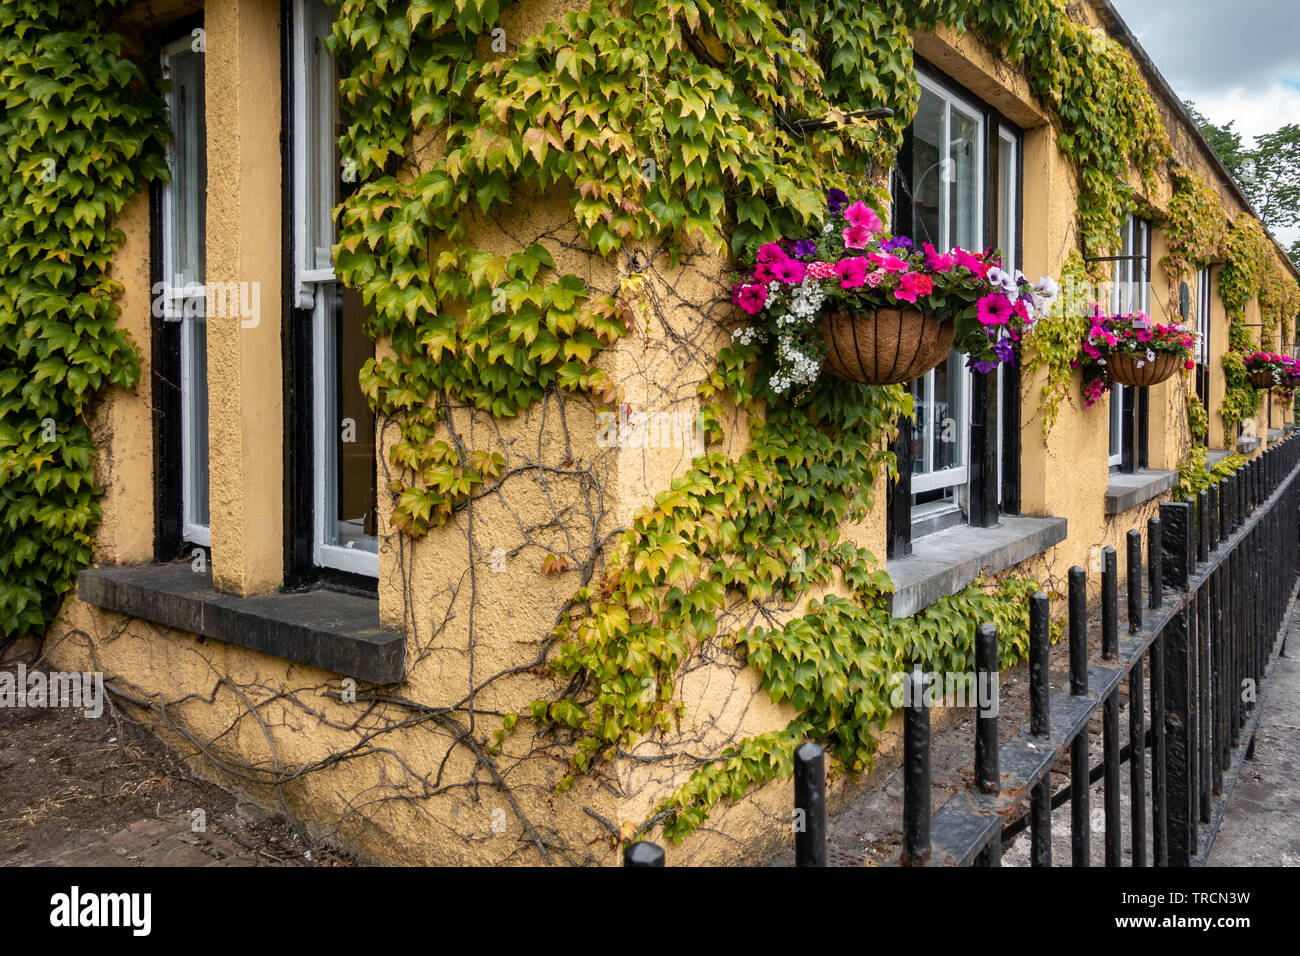 Dunraven Arms Hotel with Flower Boxes in Adare, Ireland - Stock Image